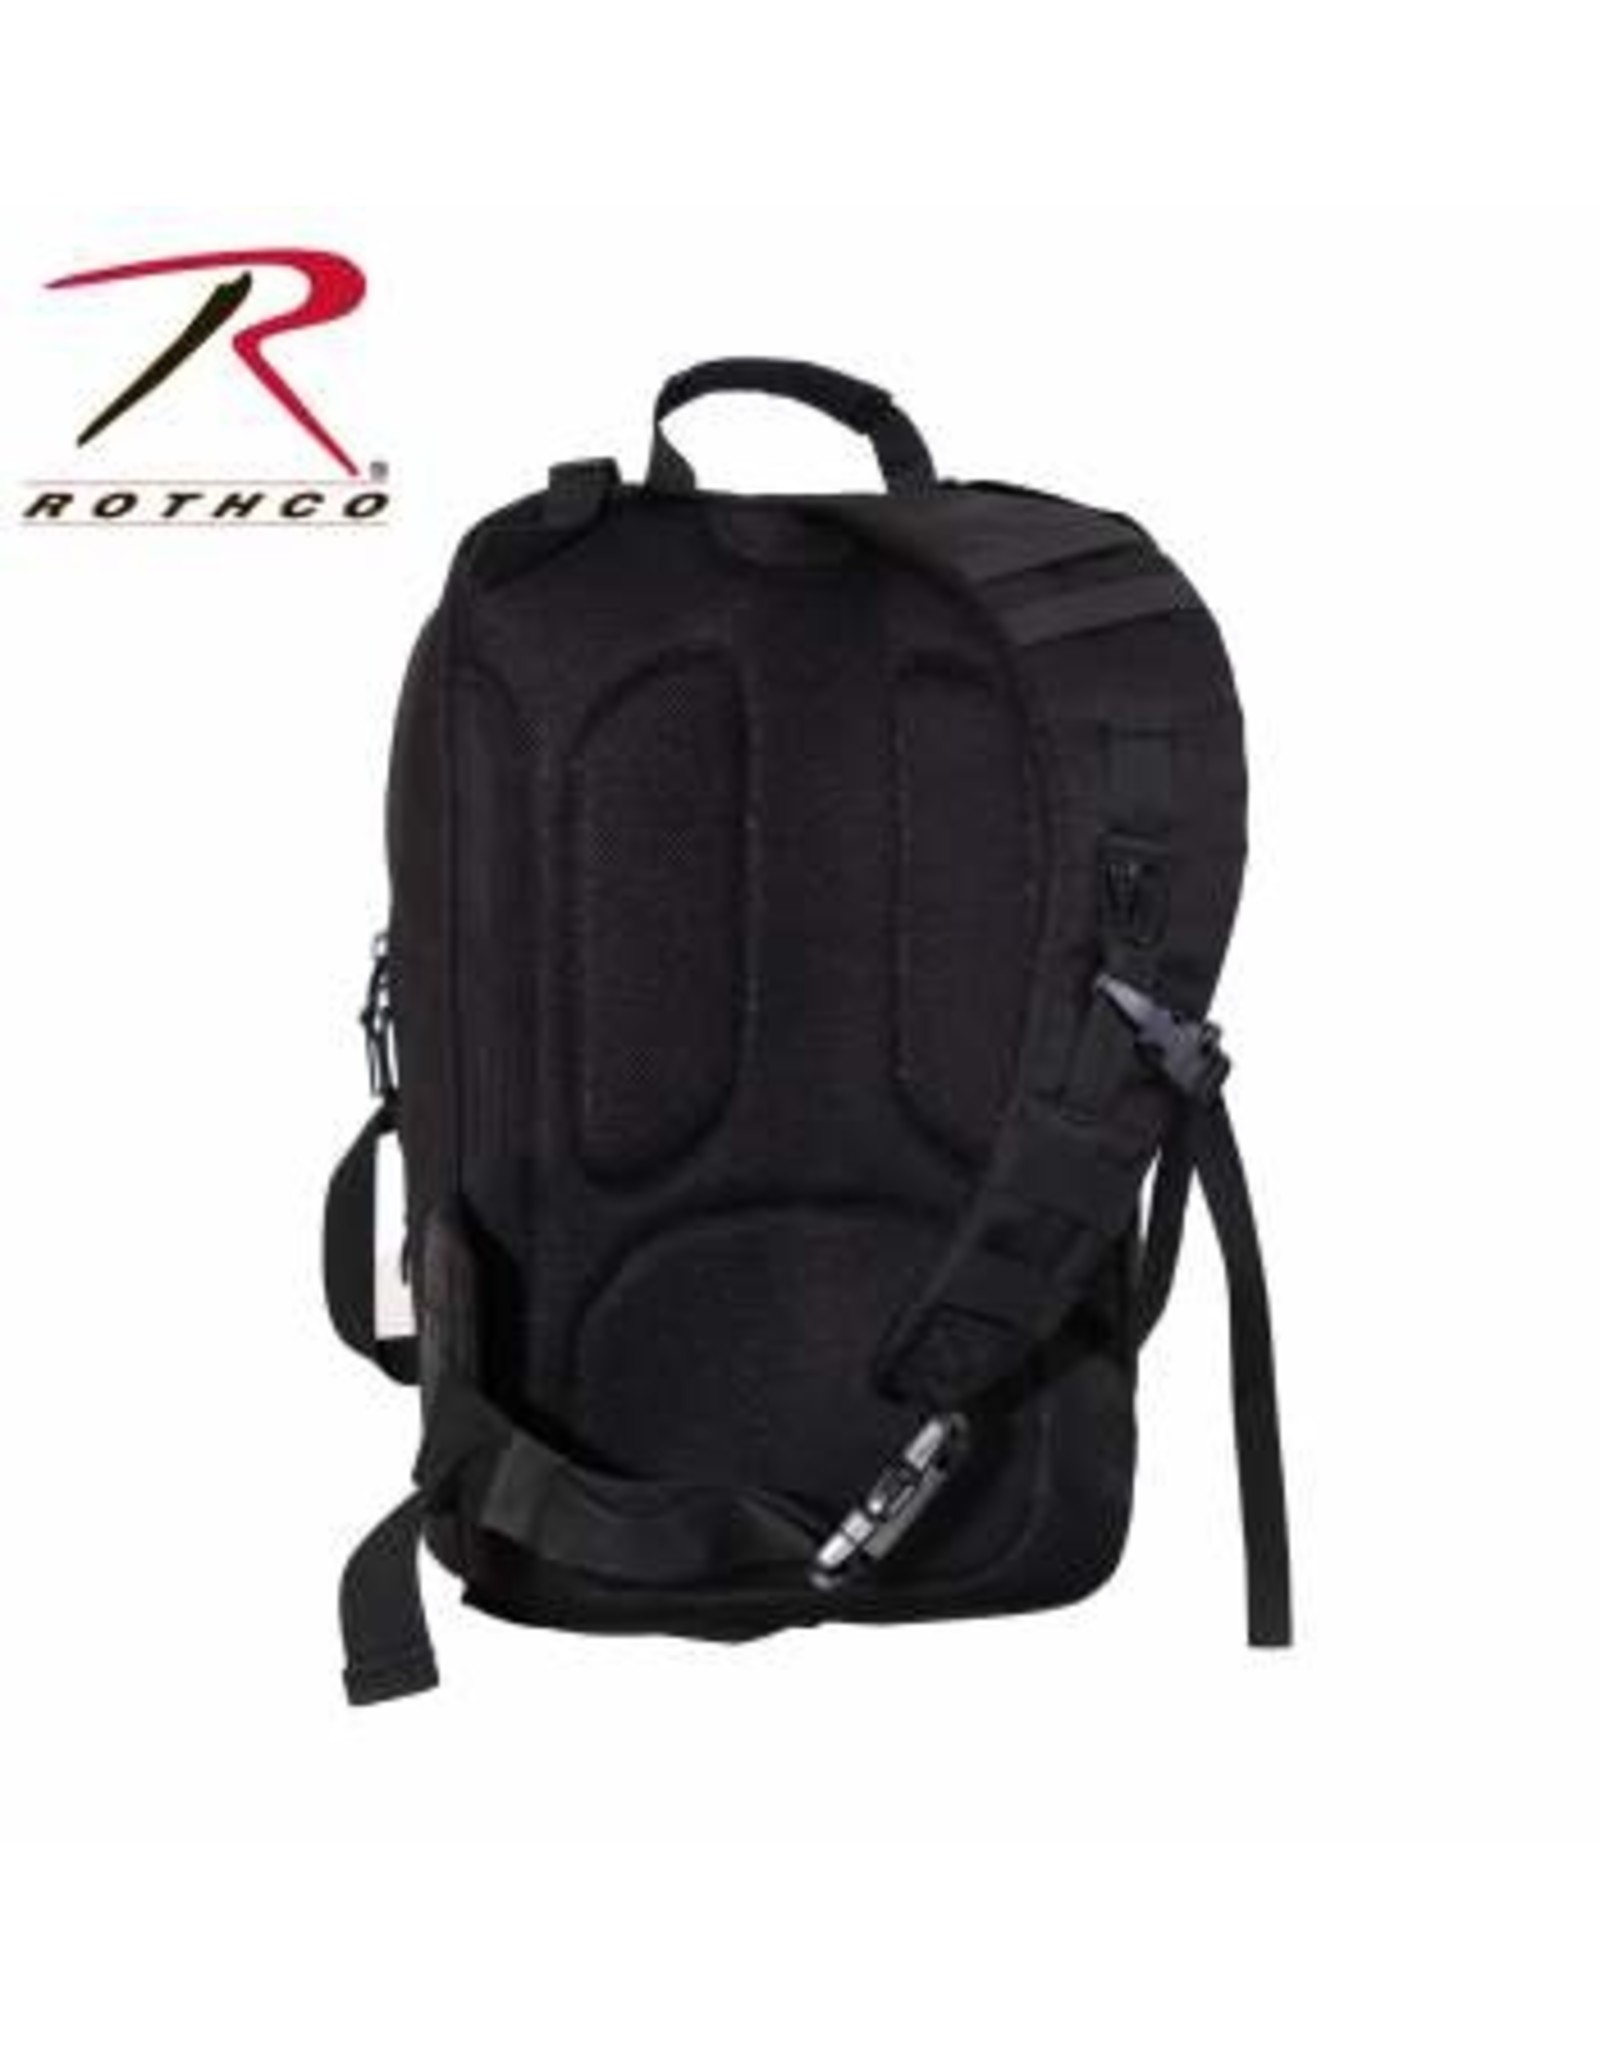 ROTHCO Rothco Tactical sling Transport Pack